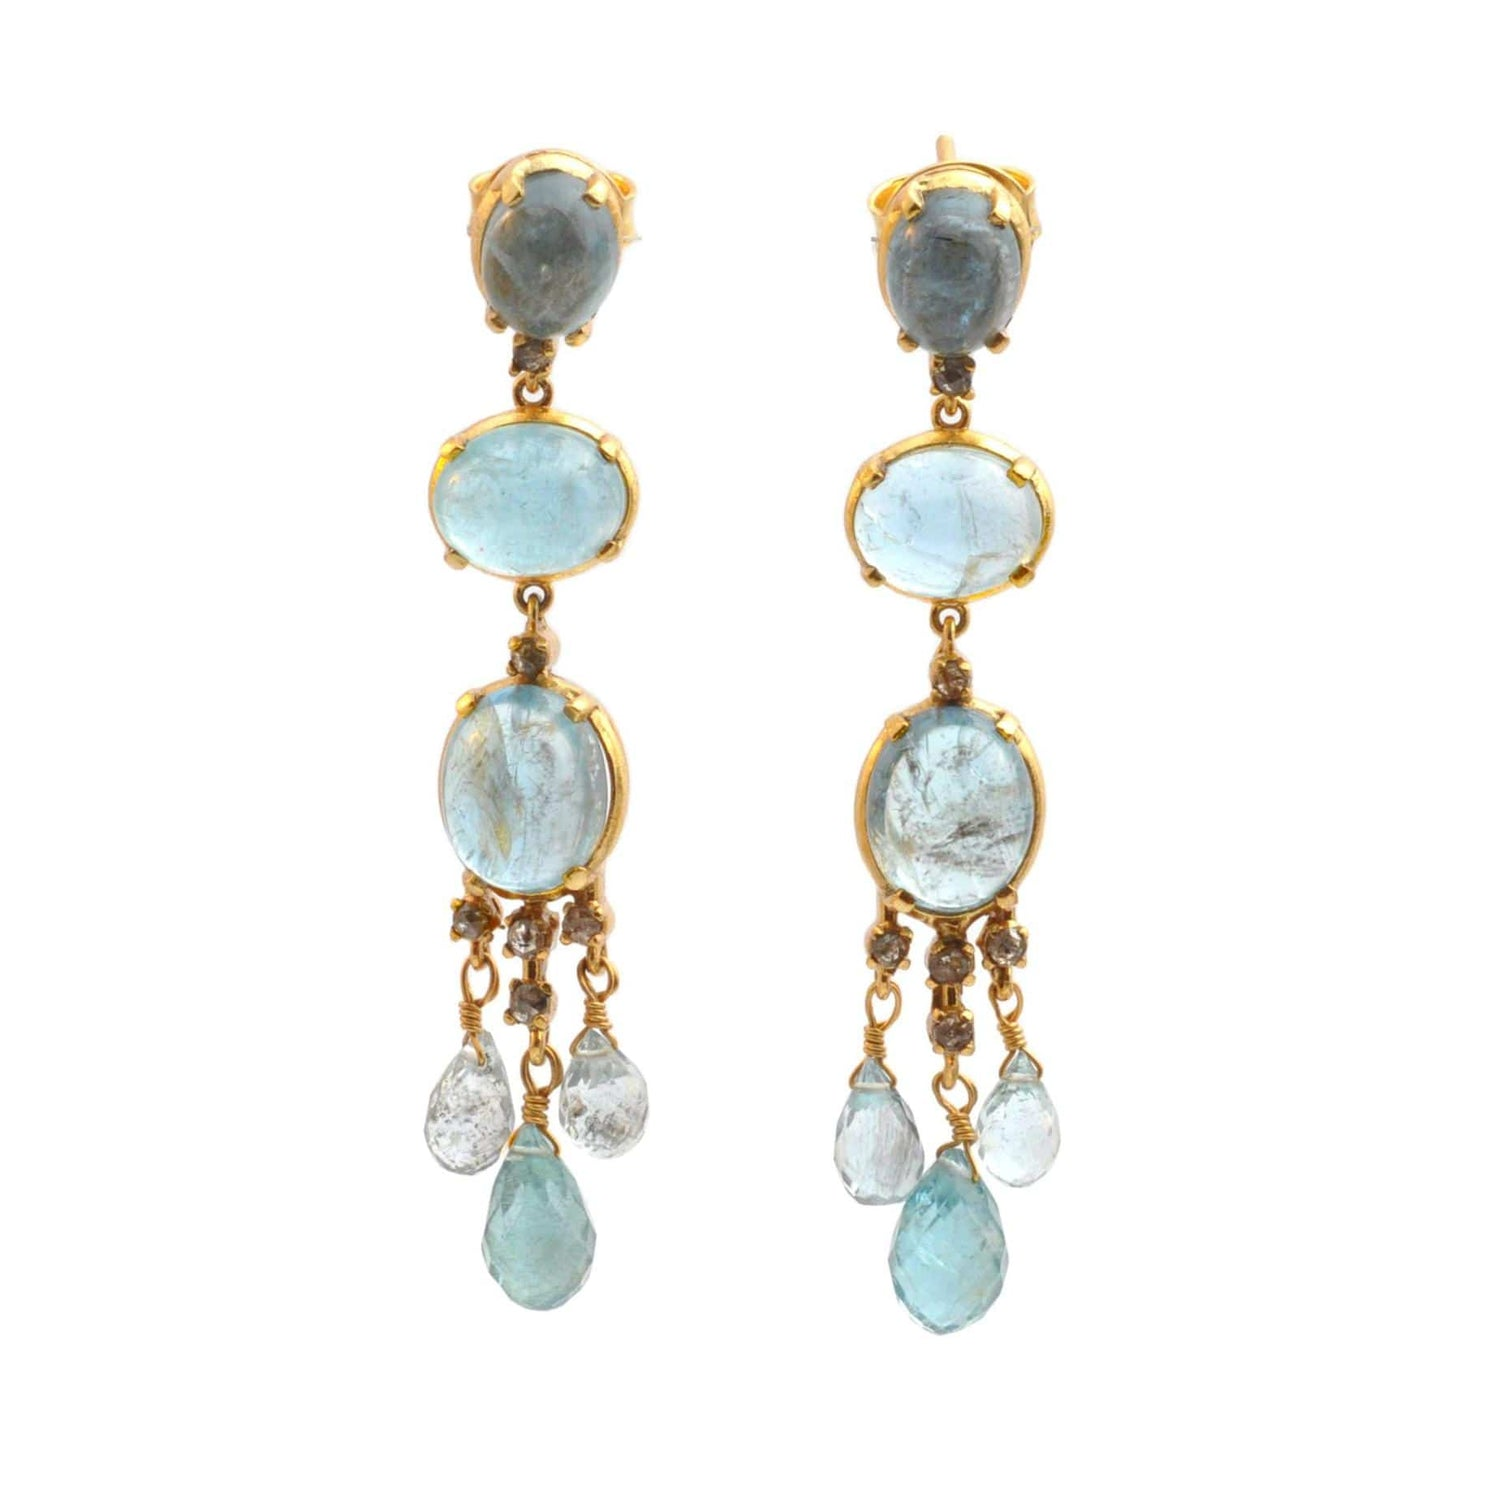 Aquamarine Diamond Chandelier Earrings - Curated Los Angeles